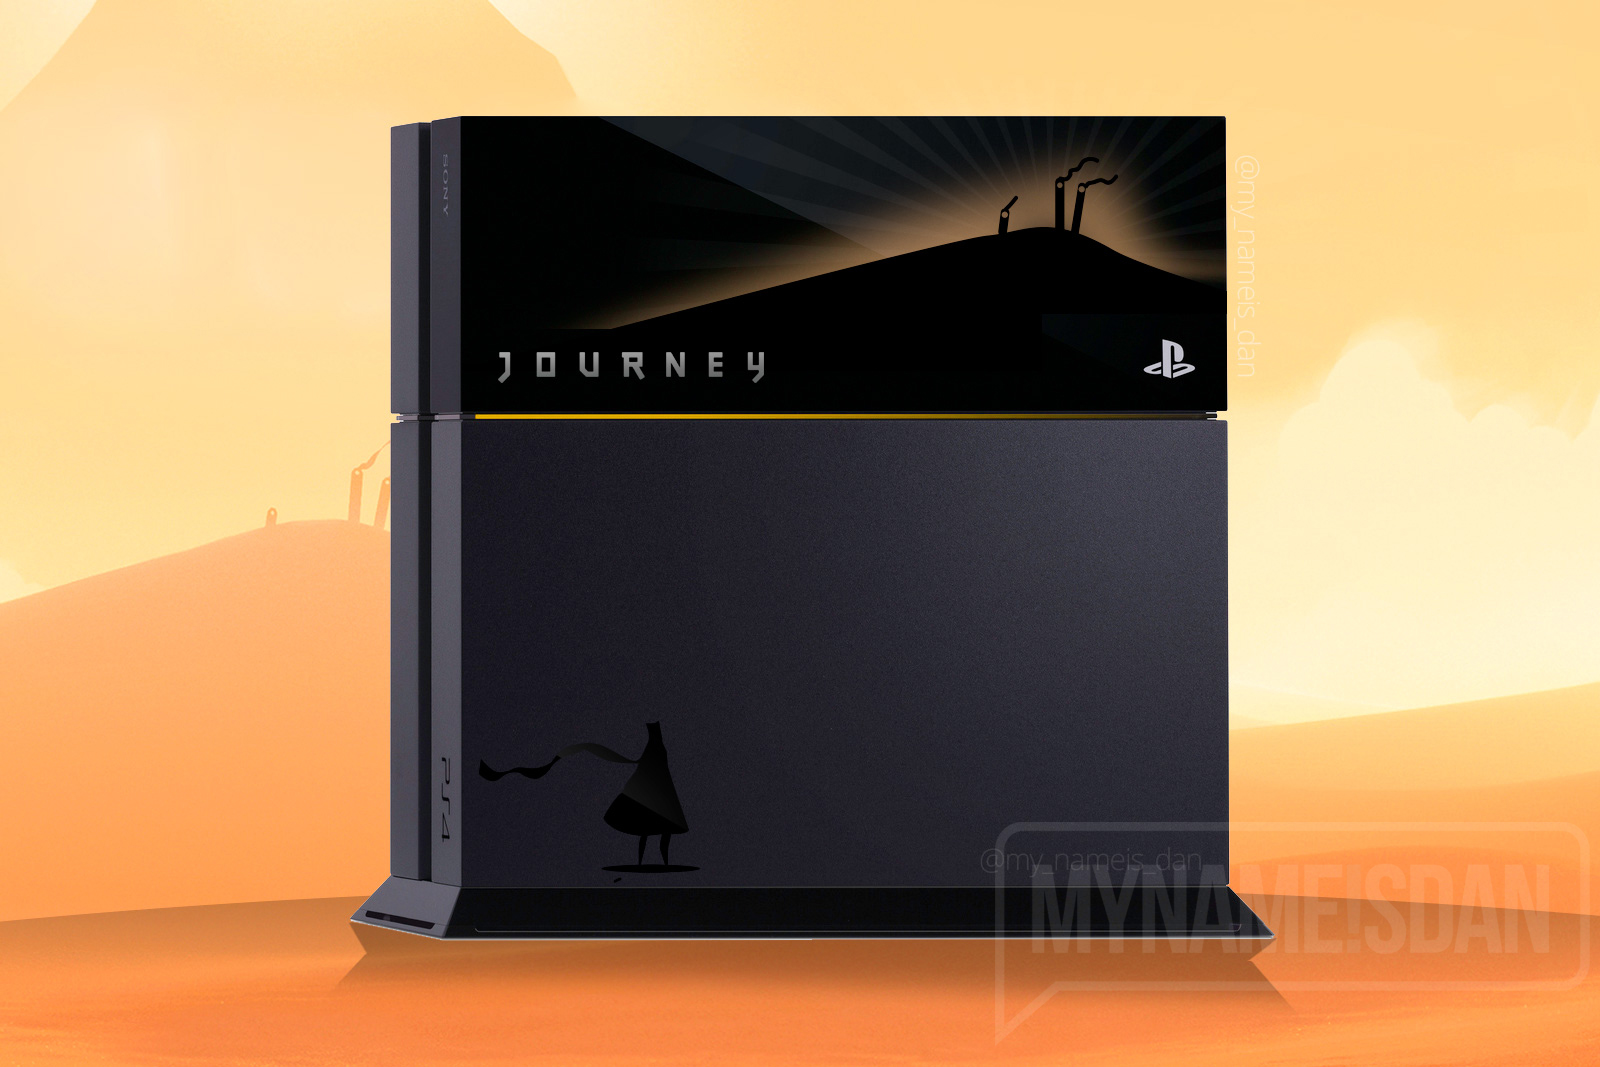 Journey PS4 by My Name is Dan